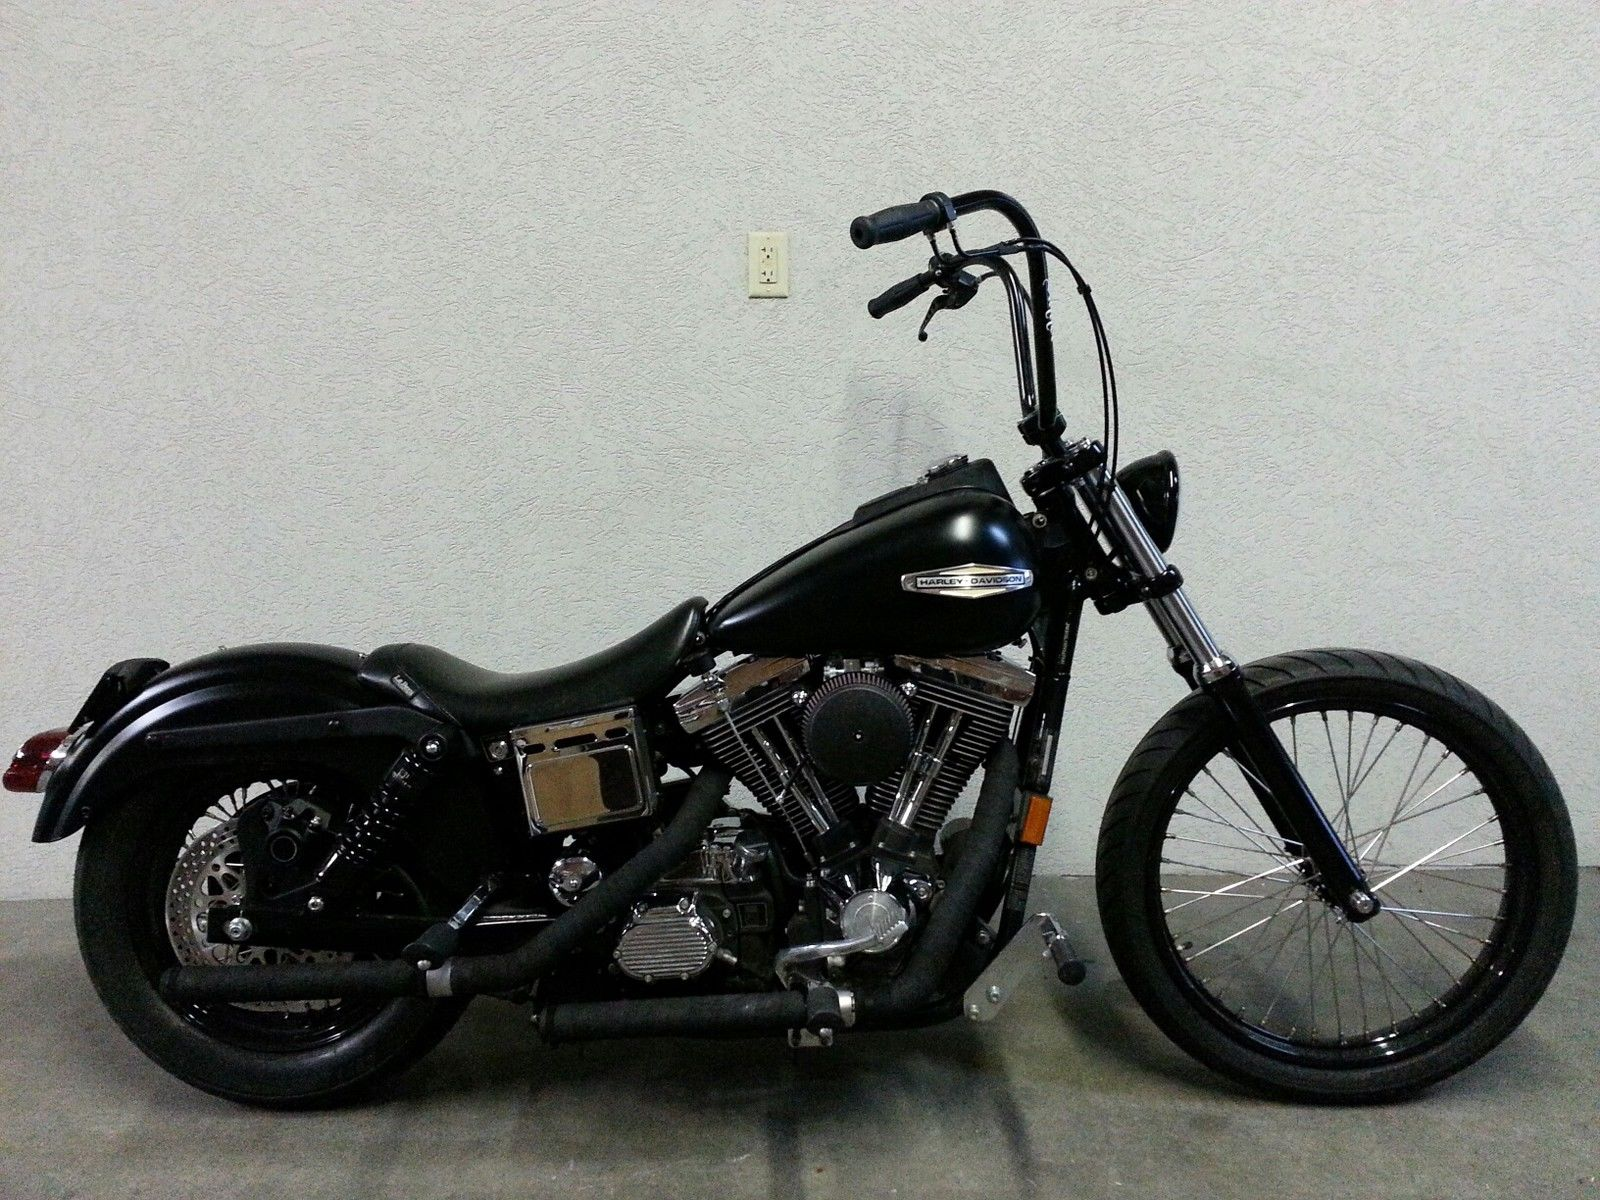 1996 harley dyna fxds lowrider hardcore street bob bobber chopper. Black Bedroom Furniture Sets. Home Design Ideas